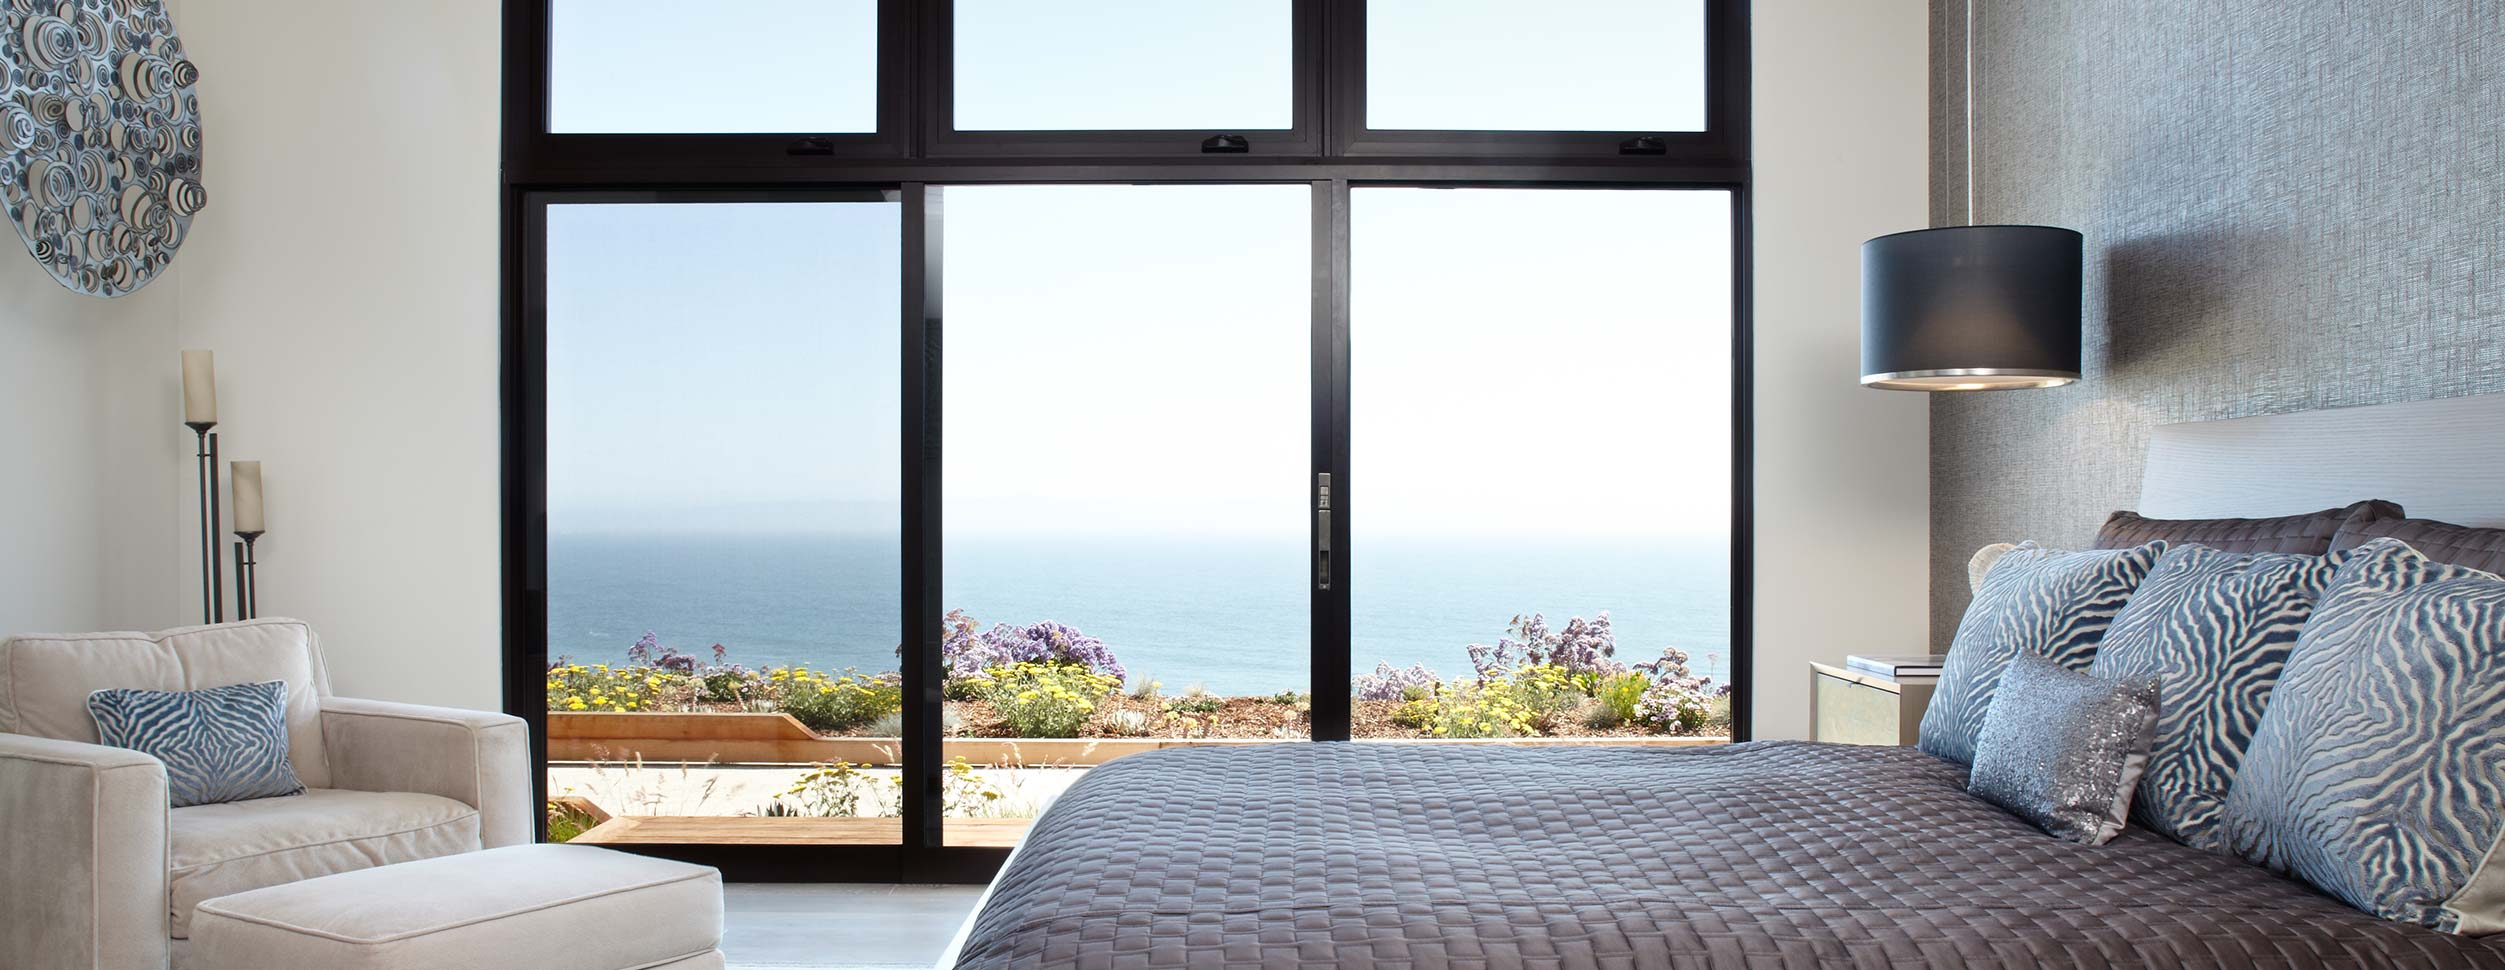 The master bedroom features a giant sliding glass door that opens up to the Pacific Ocean.